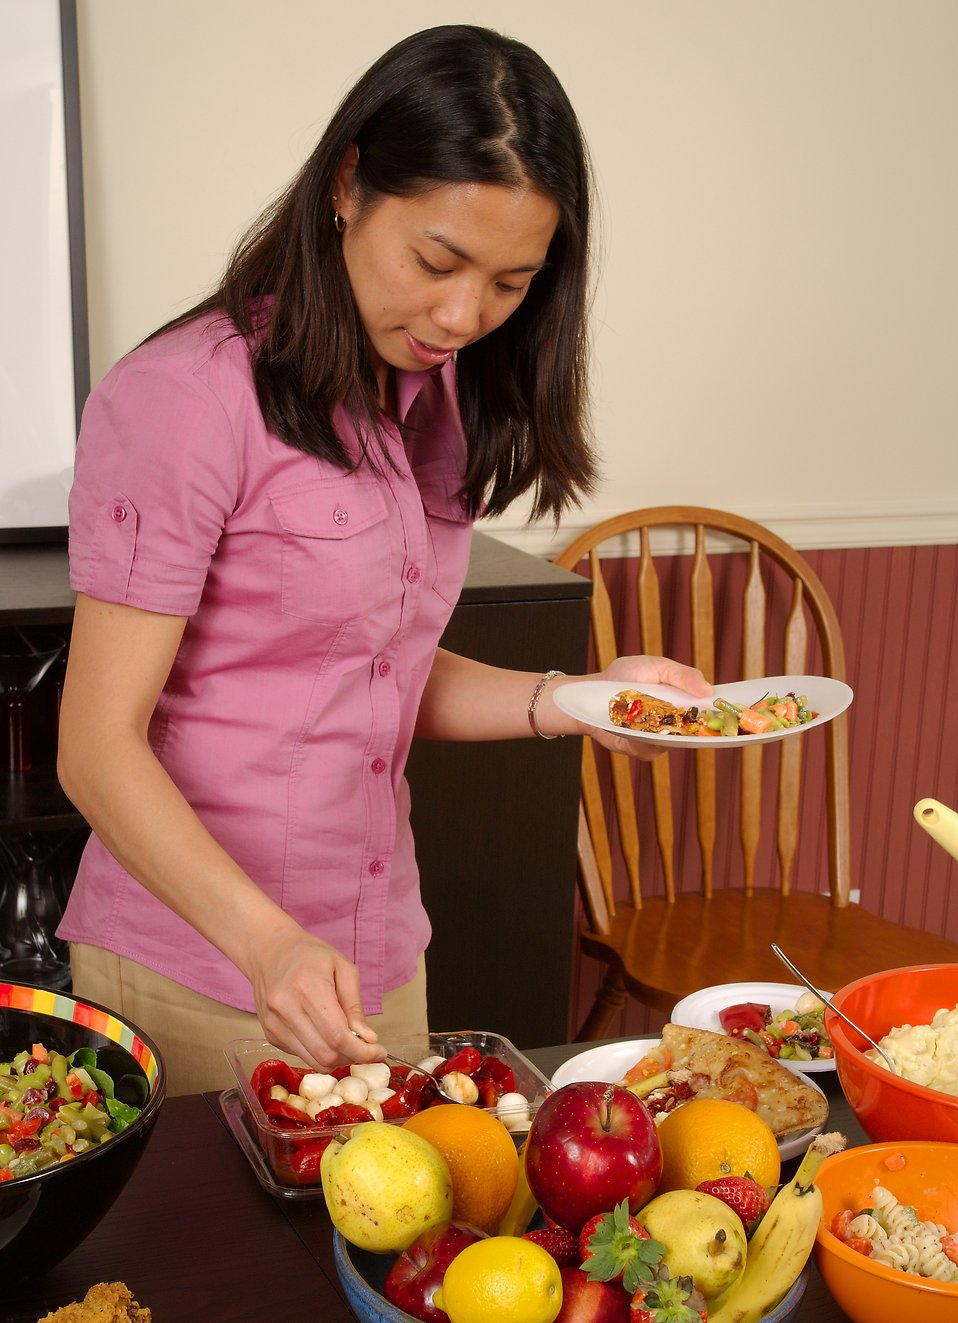 A young Asian woman serving herself food from a table : Free Stock Photo